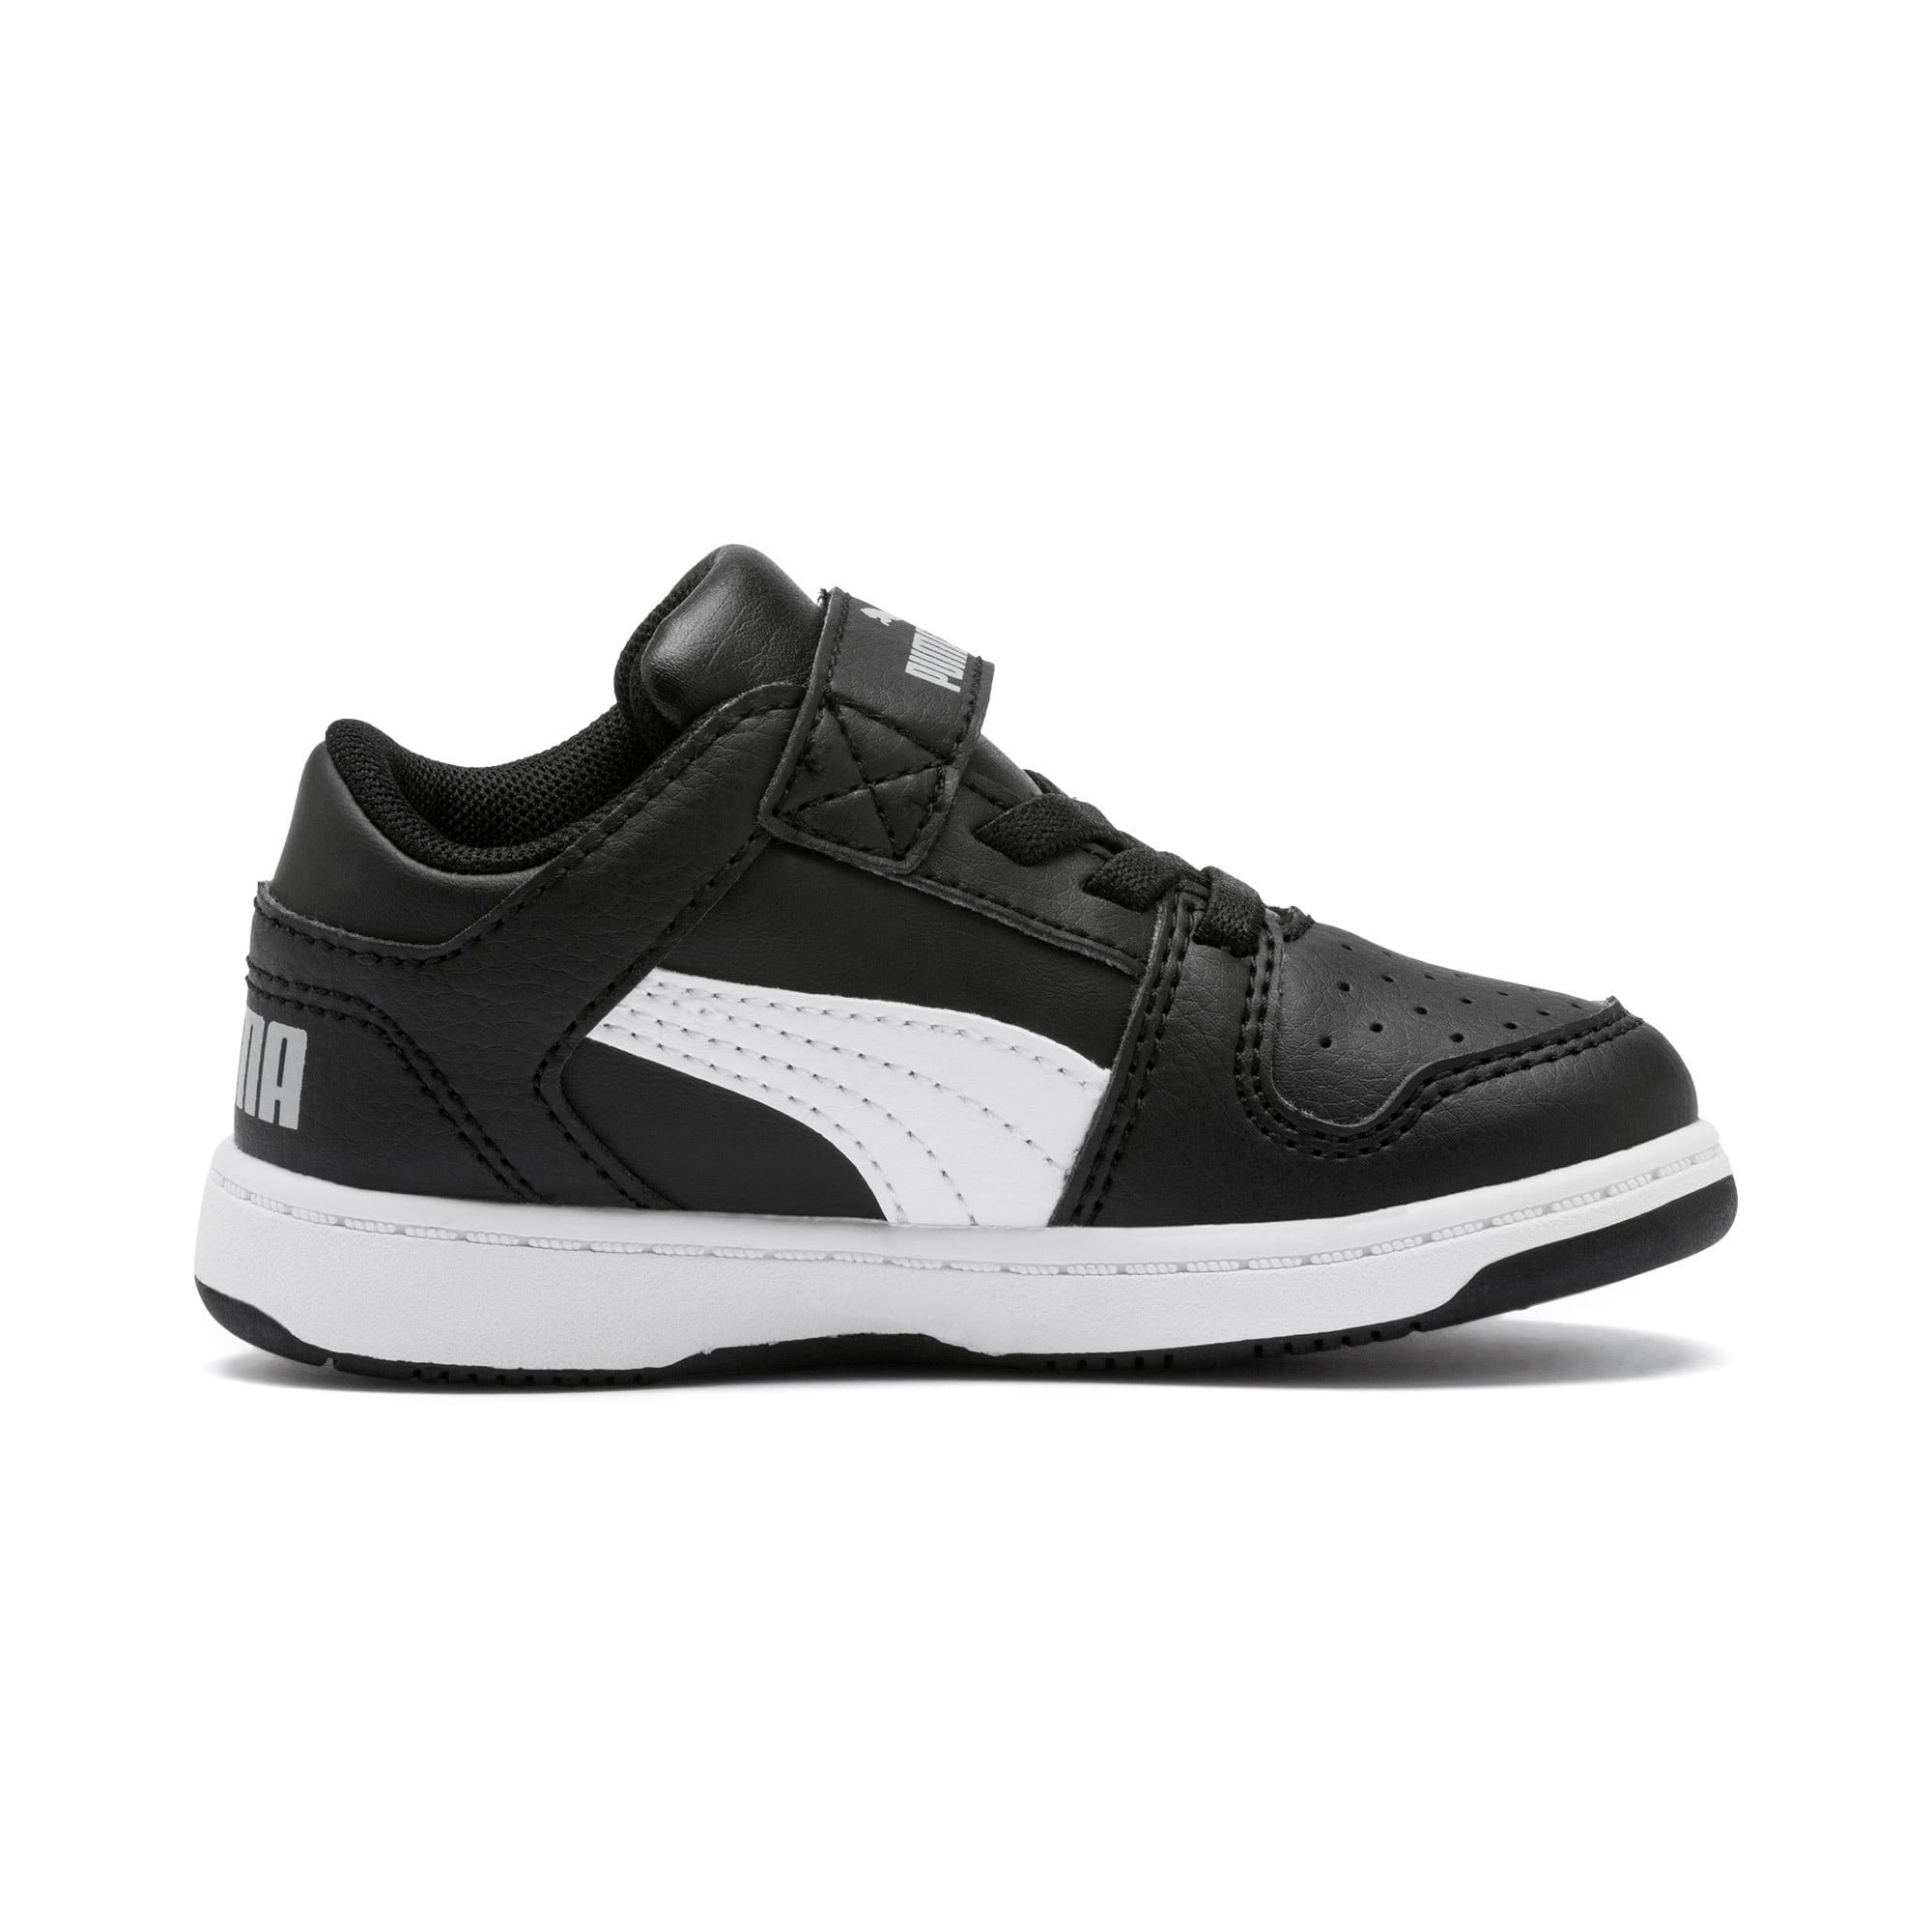 Rebound Layup Lo Babies' Trainers, Puma Black-White-High Rise, large